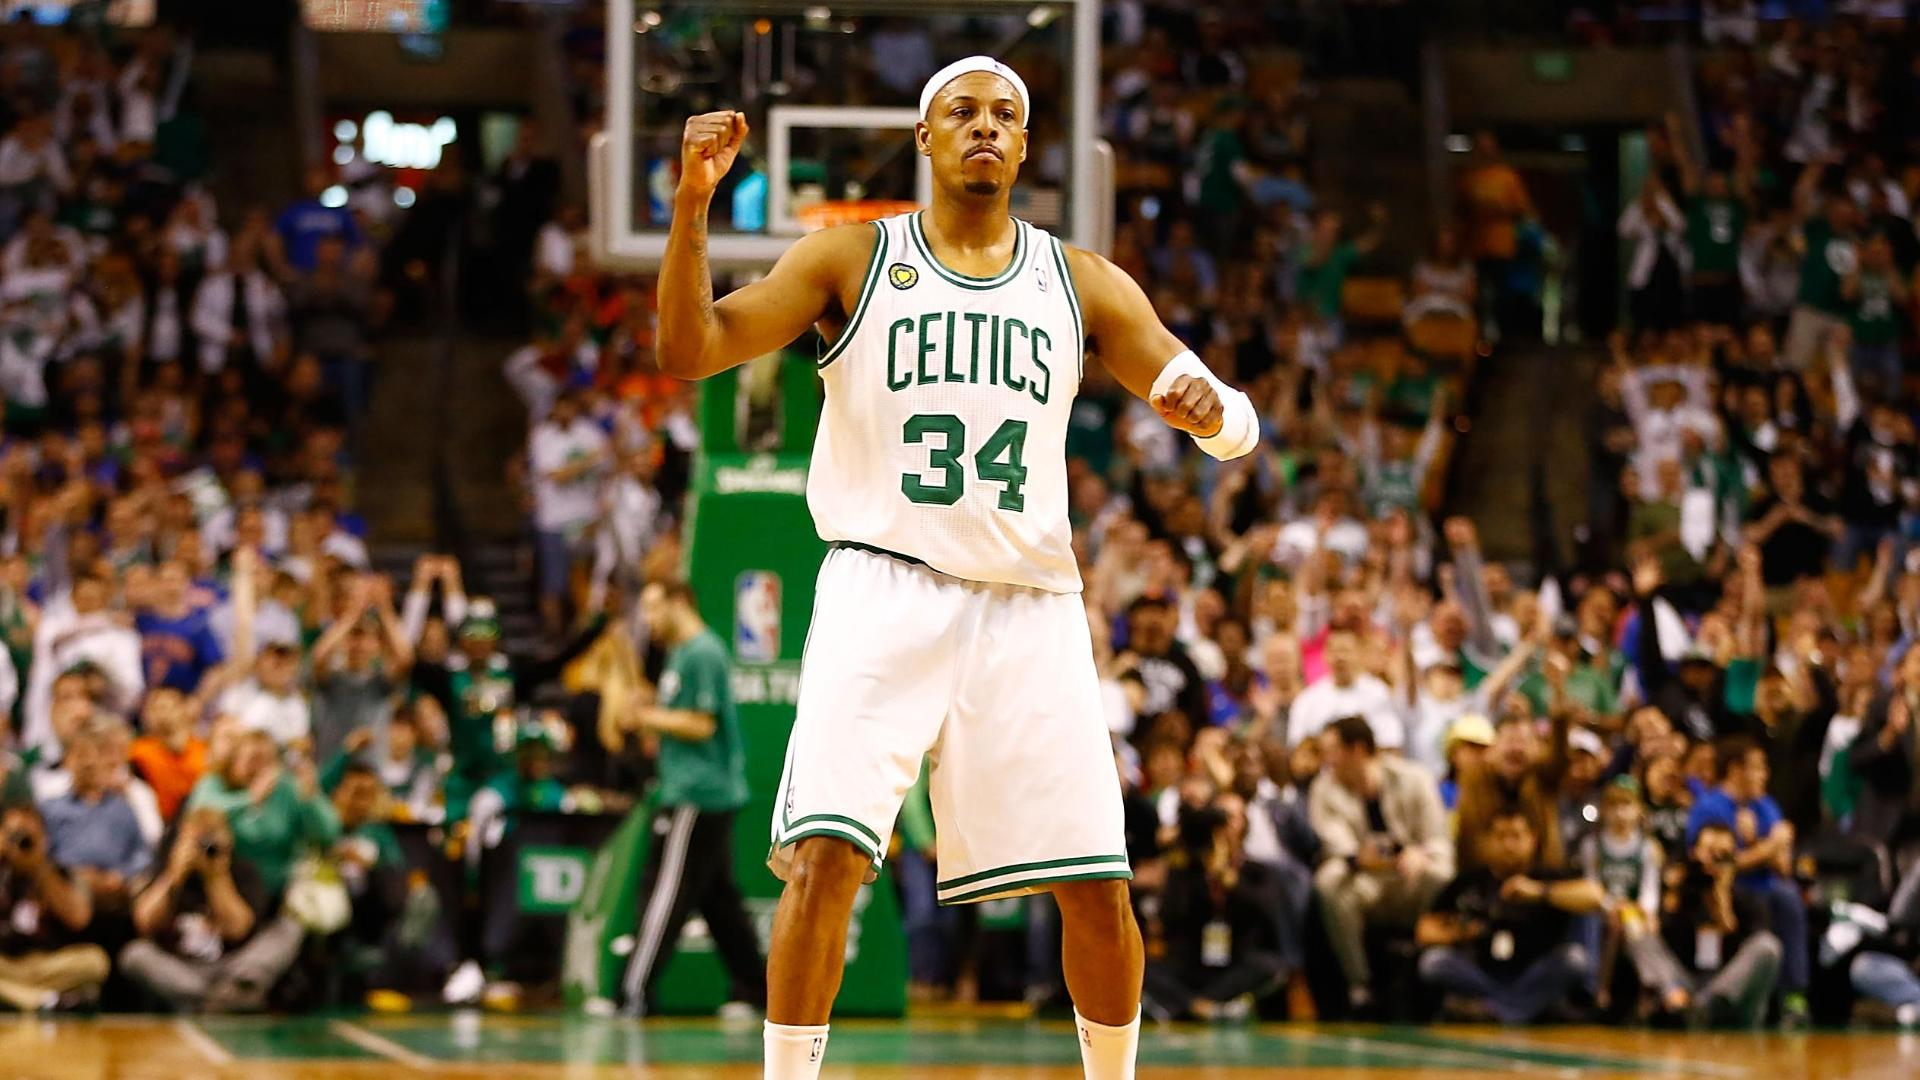 http://a.espncdn.com/media/motion/2017/0717/dm_170428_NBA_Paul_Pierce_greatest_moments_Celtics1322/dm_170428_NBA_Paul_Pierce_greatest_moments_Celtics1322.jpg